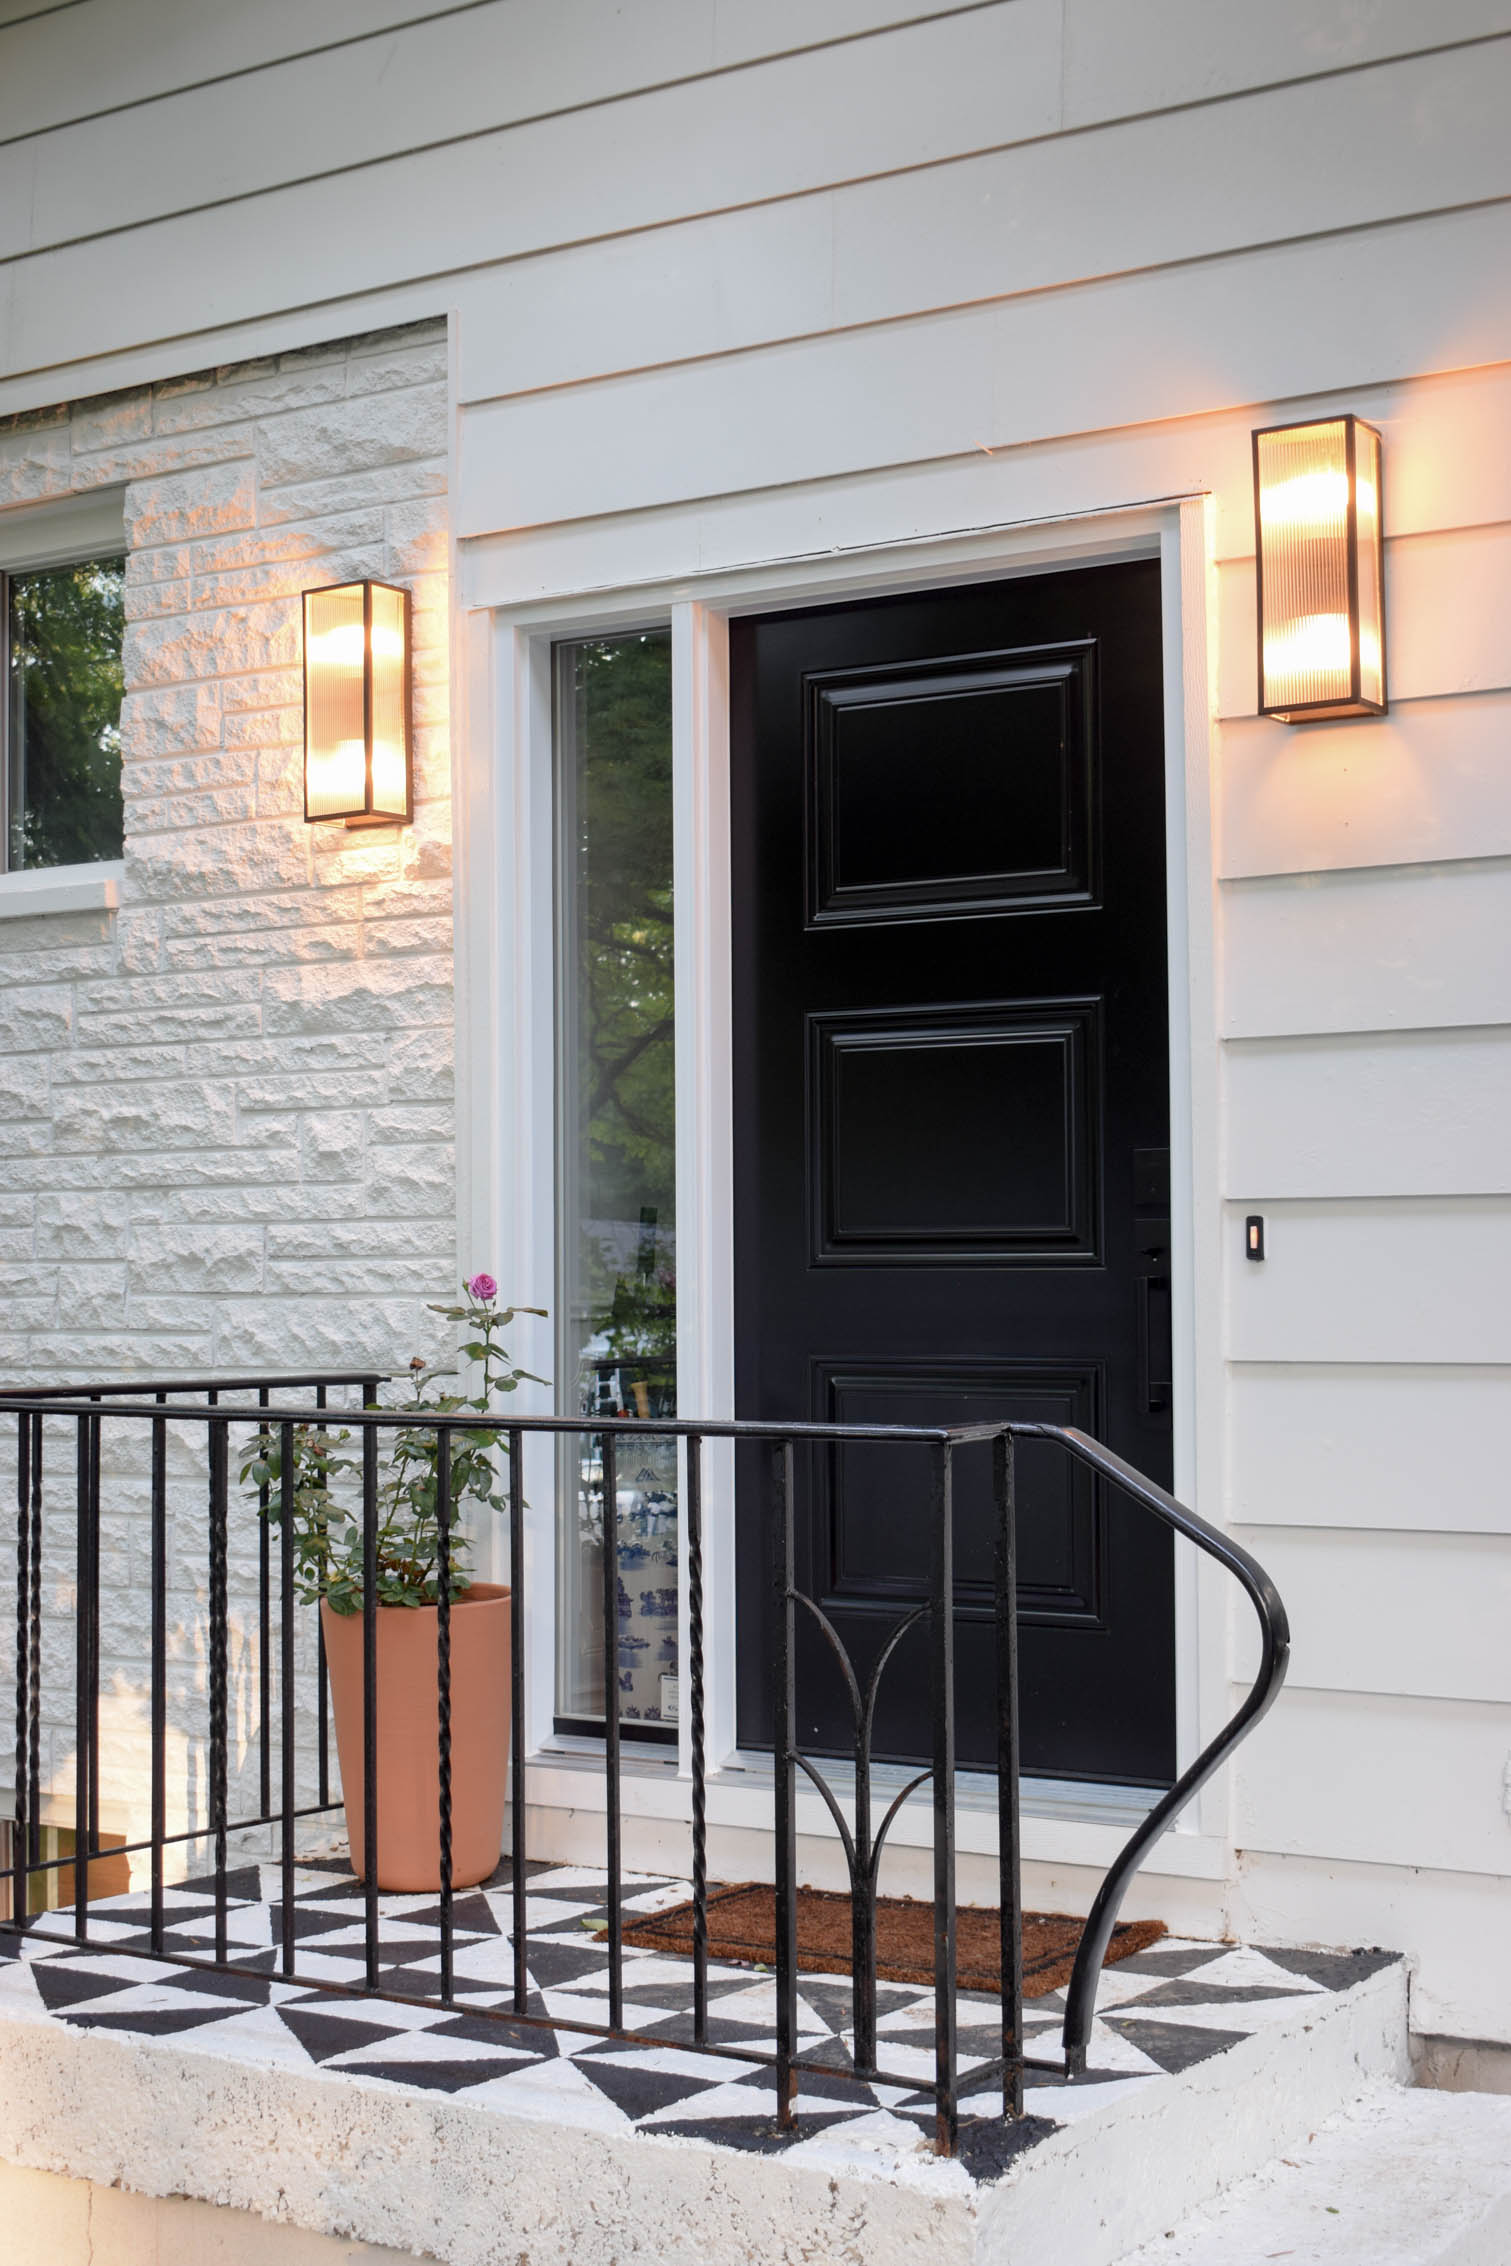 I've got the skinny on choosing MCM Exterior lighting, including the best source, and what you need to keep in mind when picking a fixture.